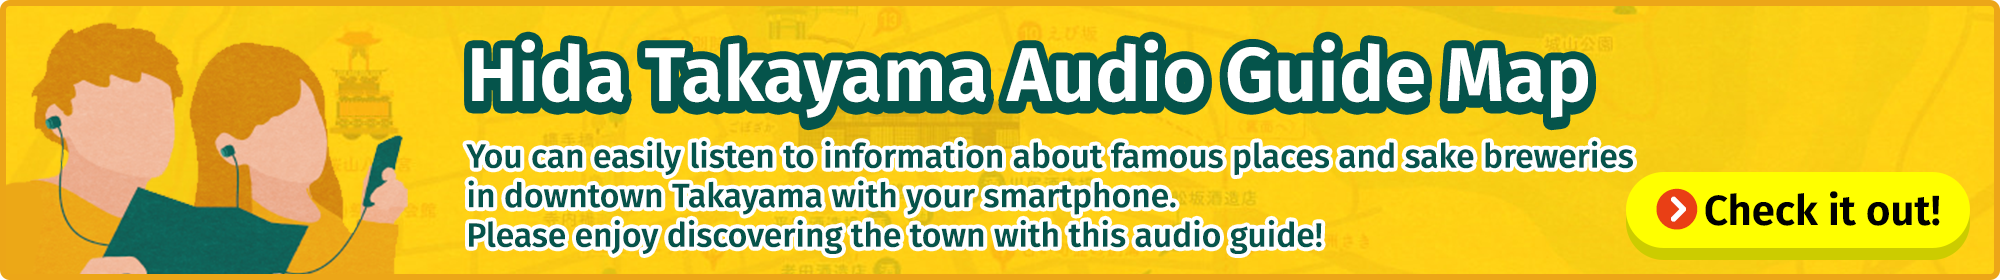 You can easily listen to information about famous places and sake breweries in downtown Takayama with your smartphone. Please enjoy discovering the town with this audio guide!